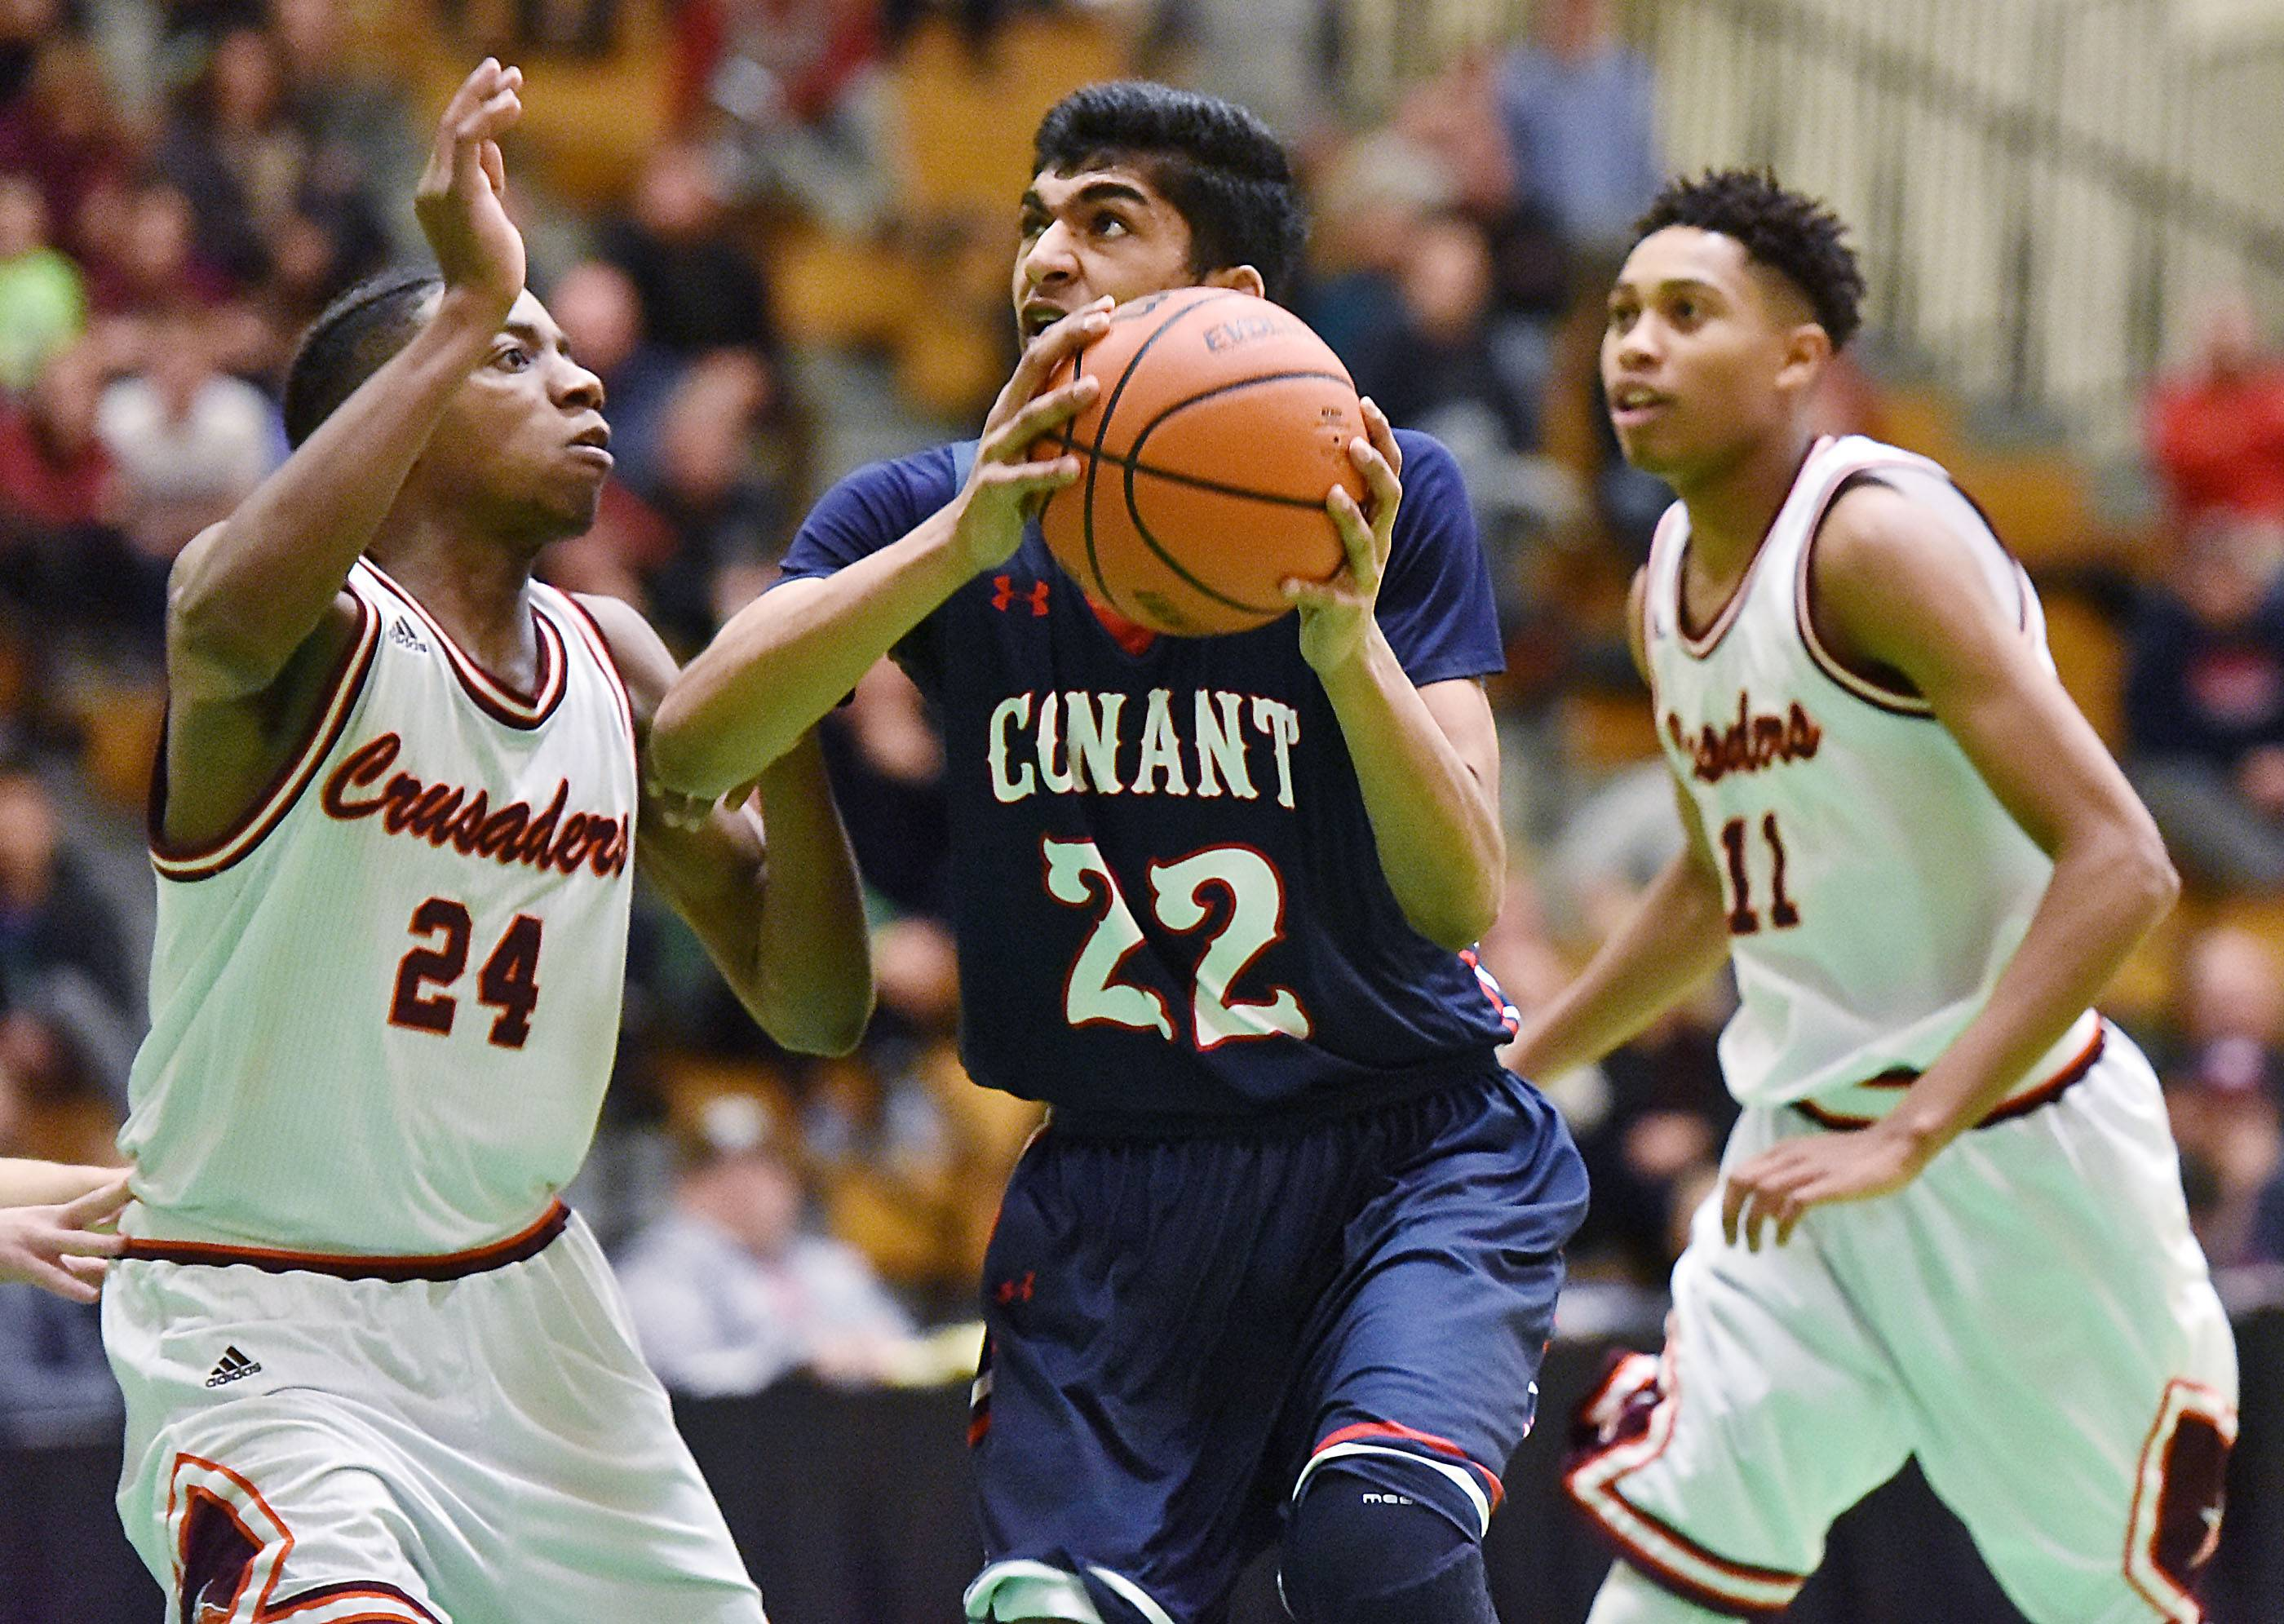 Conant's Raj Mittal drives against Brother Rice's Marquise Kennedy on Saturday at York High School in Elmhurst.